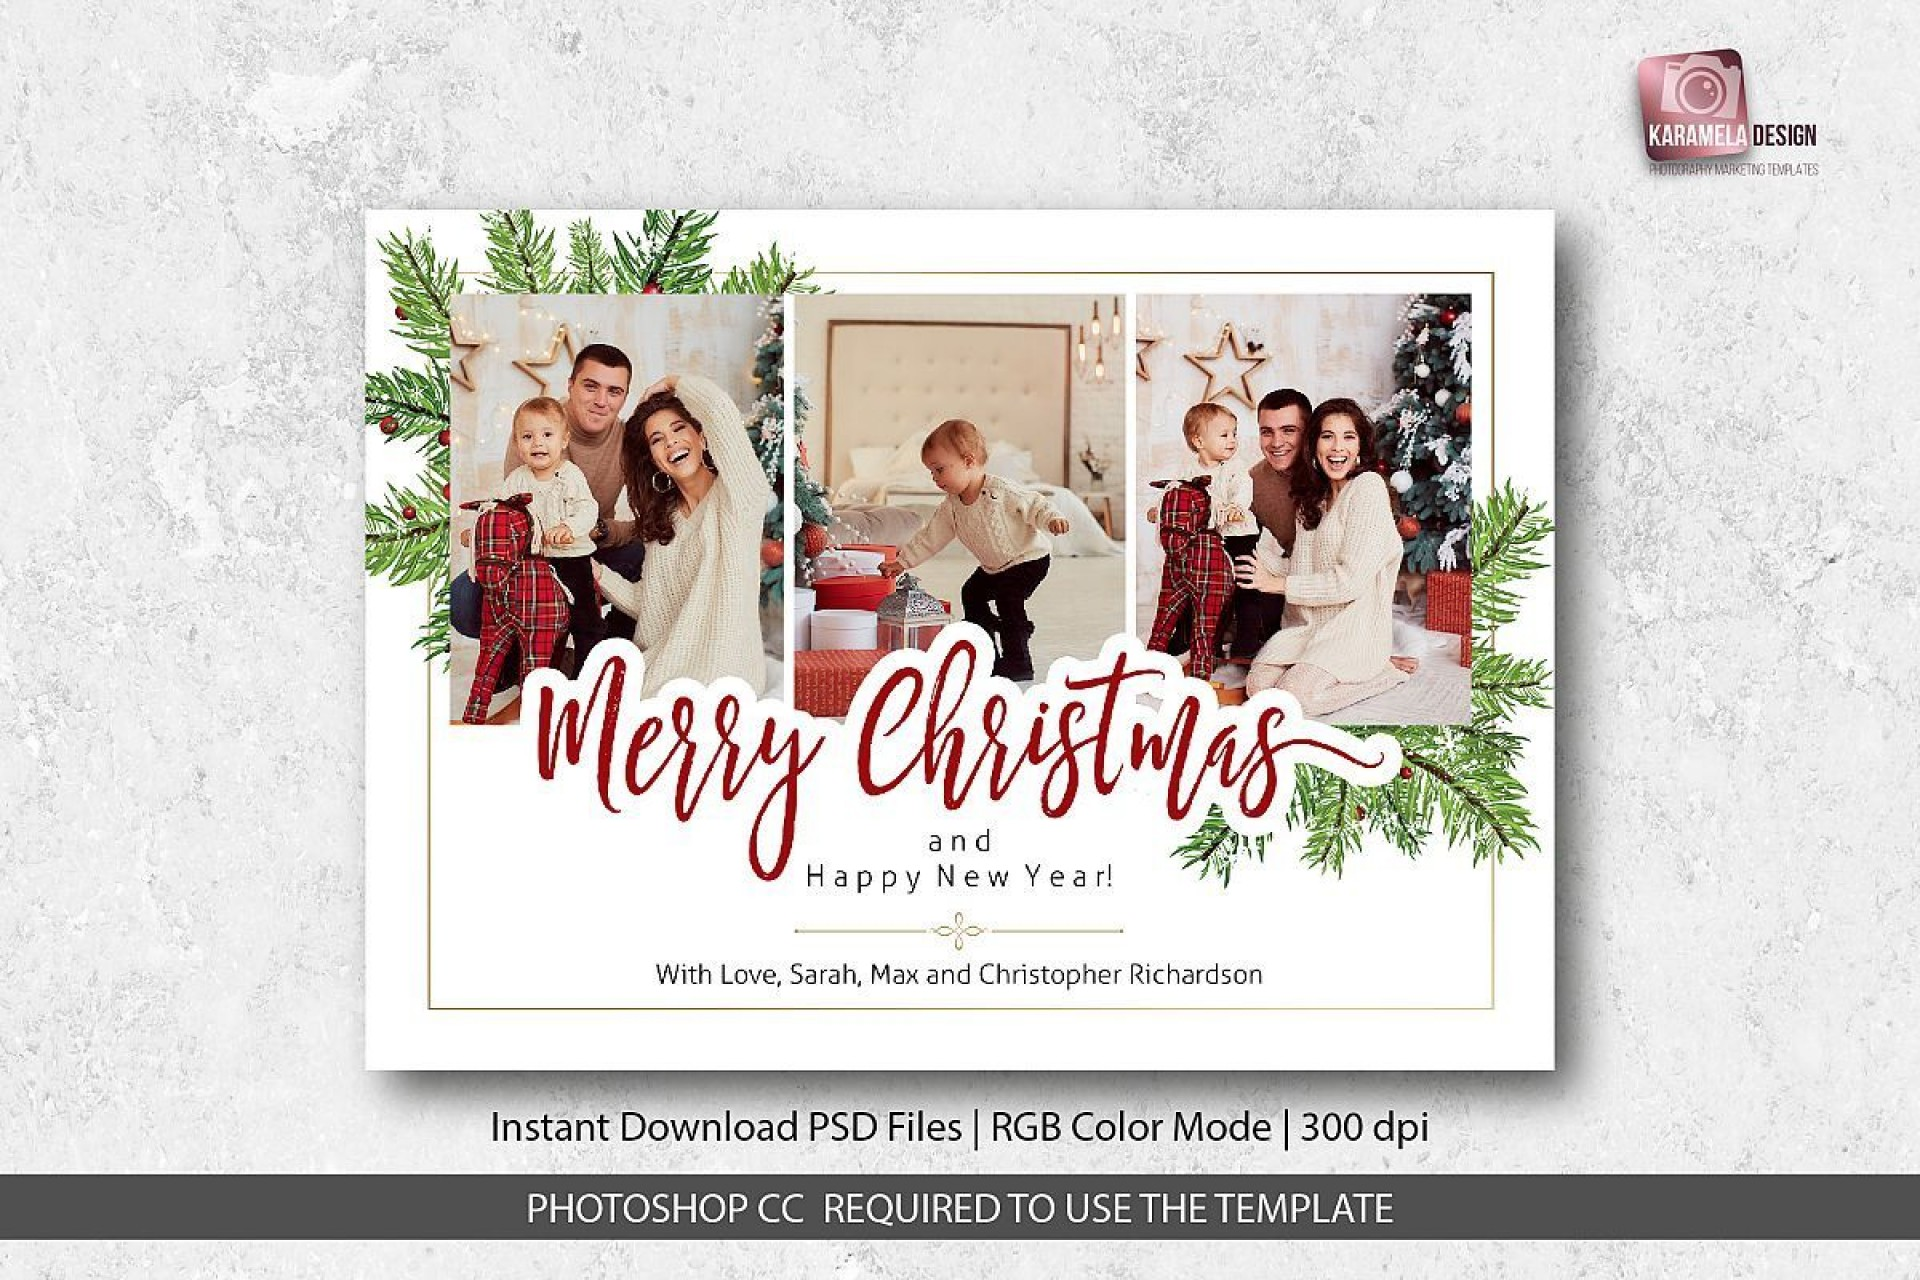 003 Rare Photoshop Christma Card Template Design  Templates Xma Funny1920